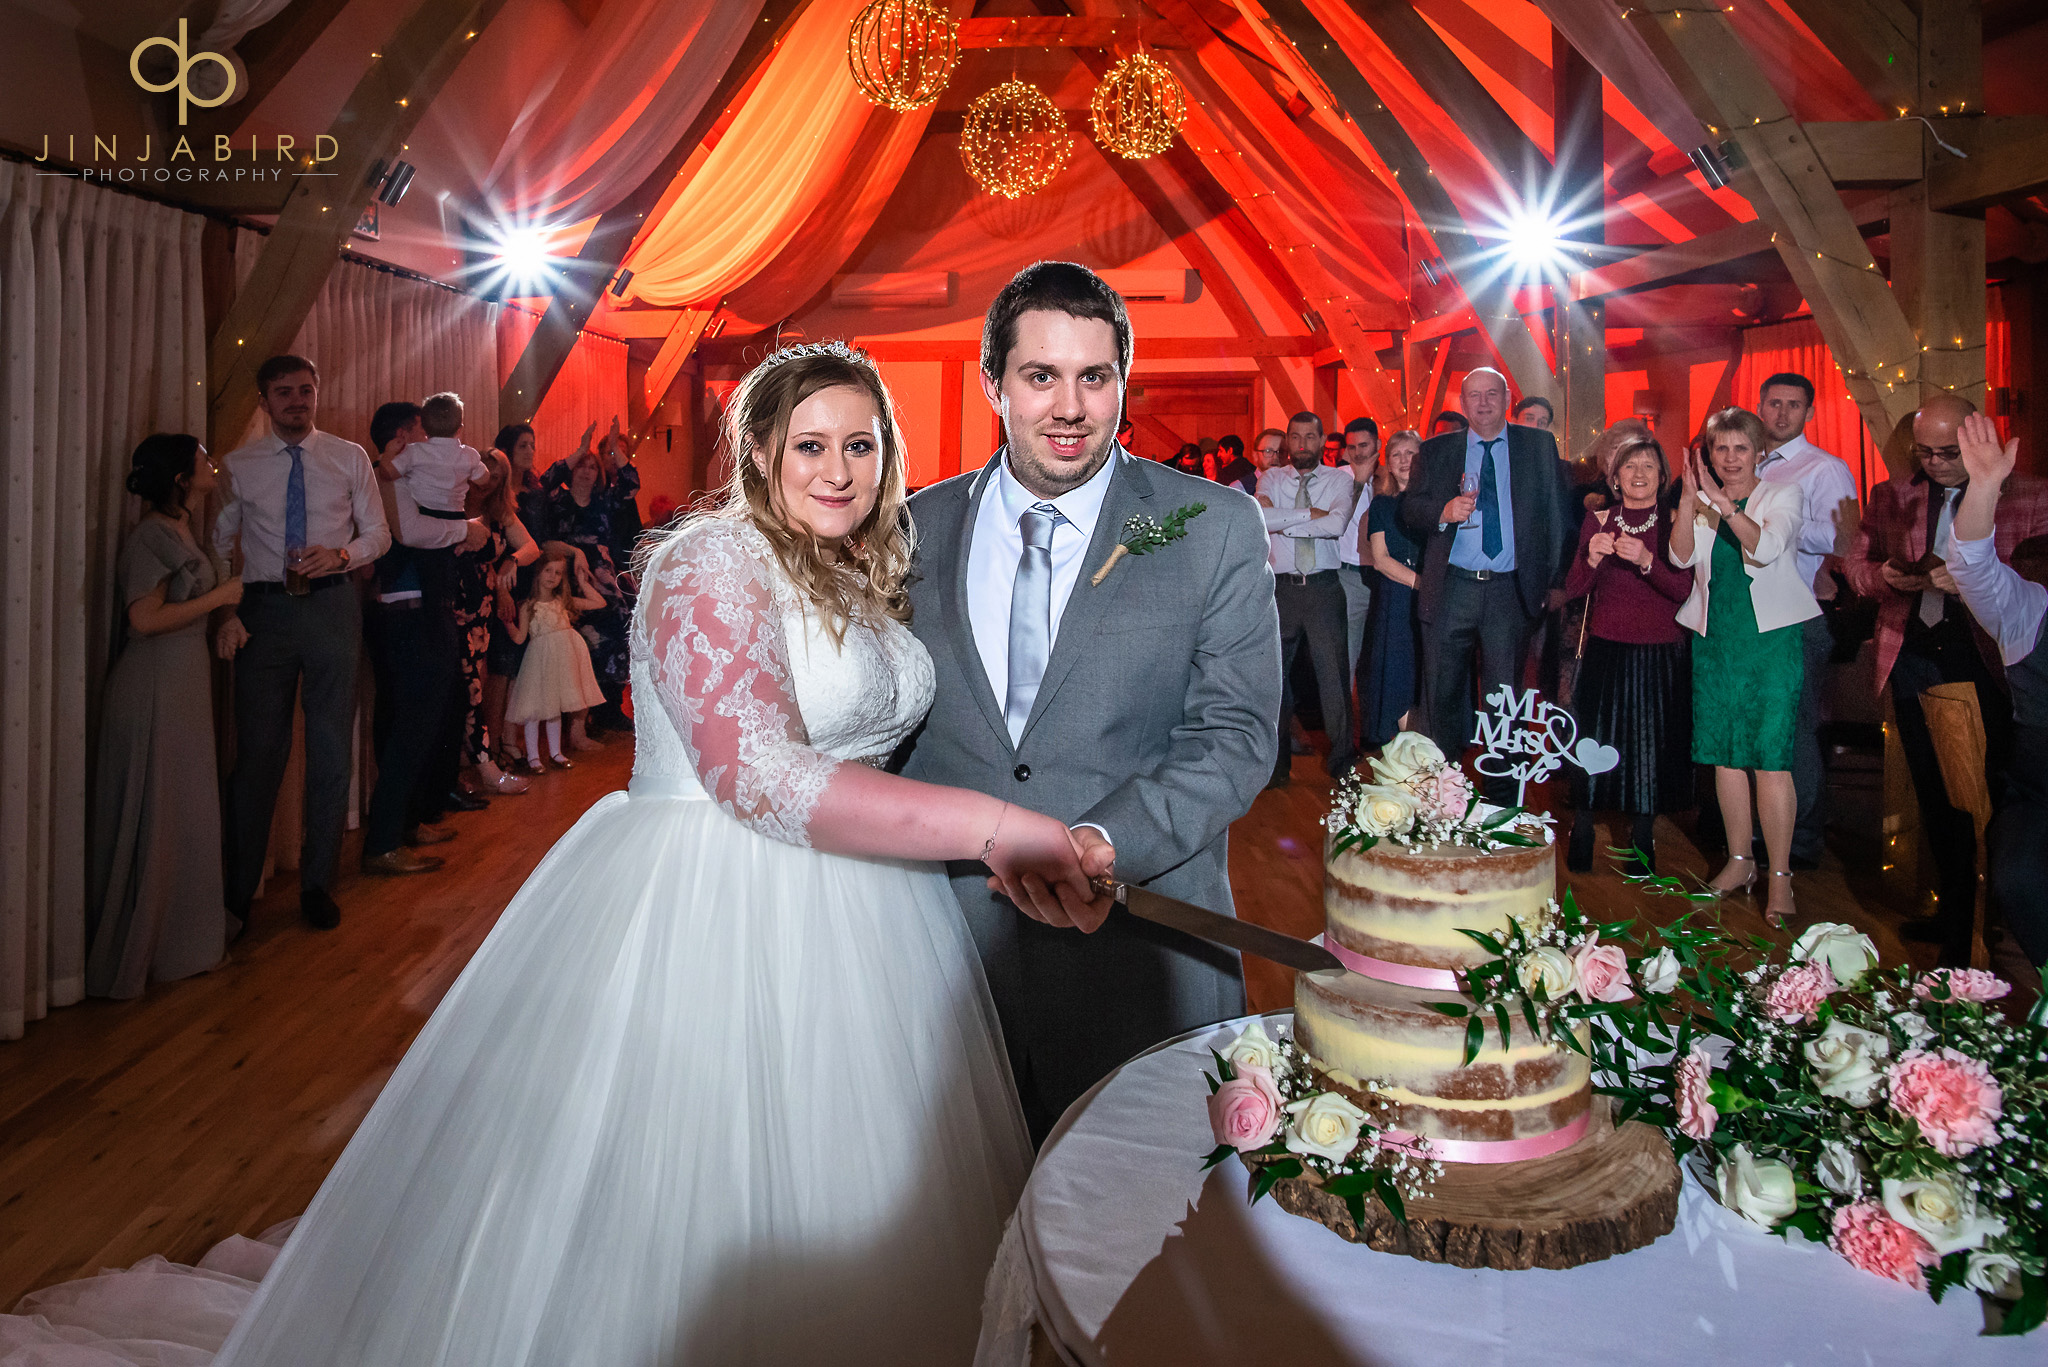 bride with groom cutting cake